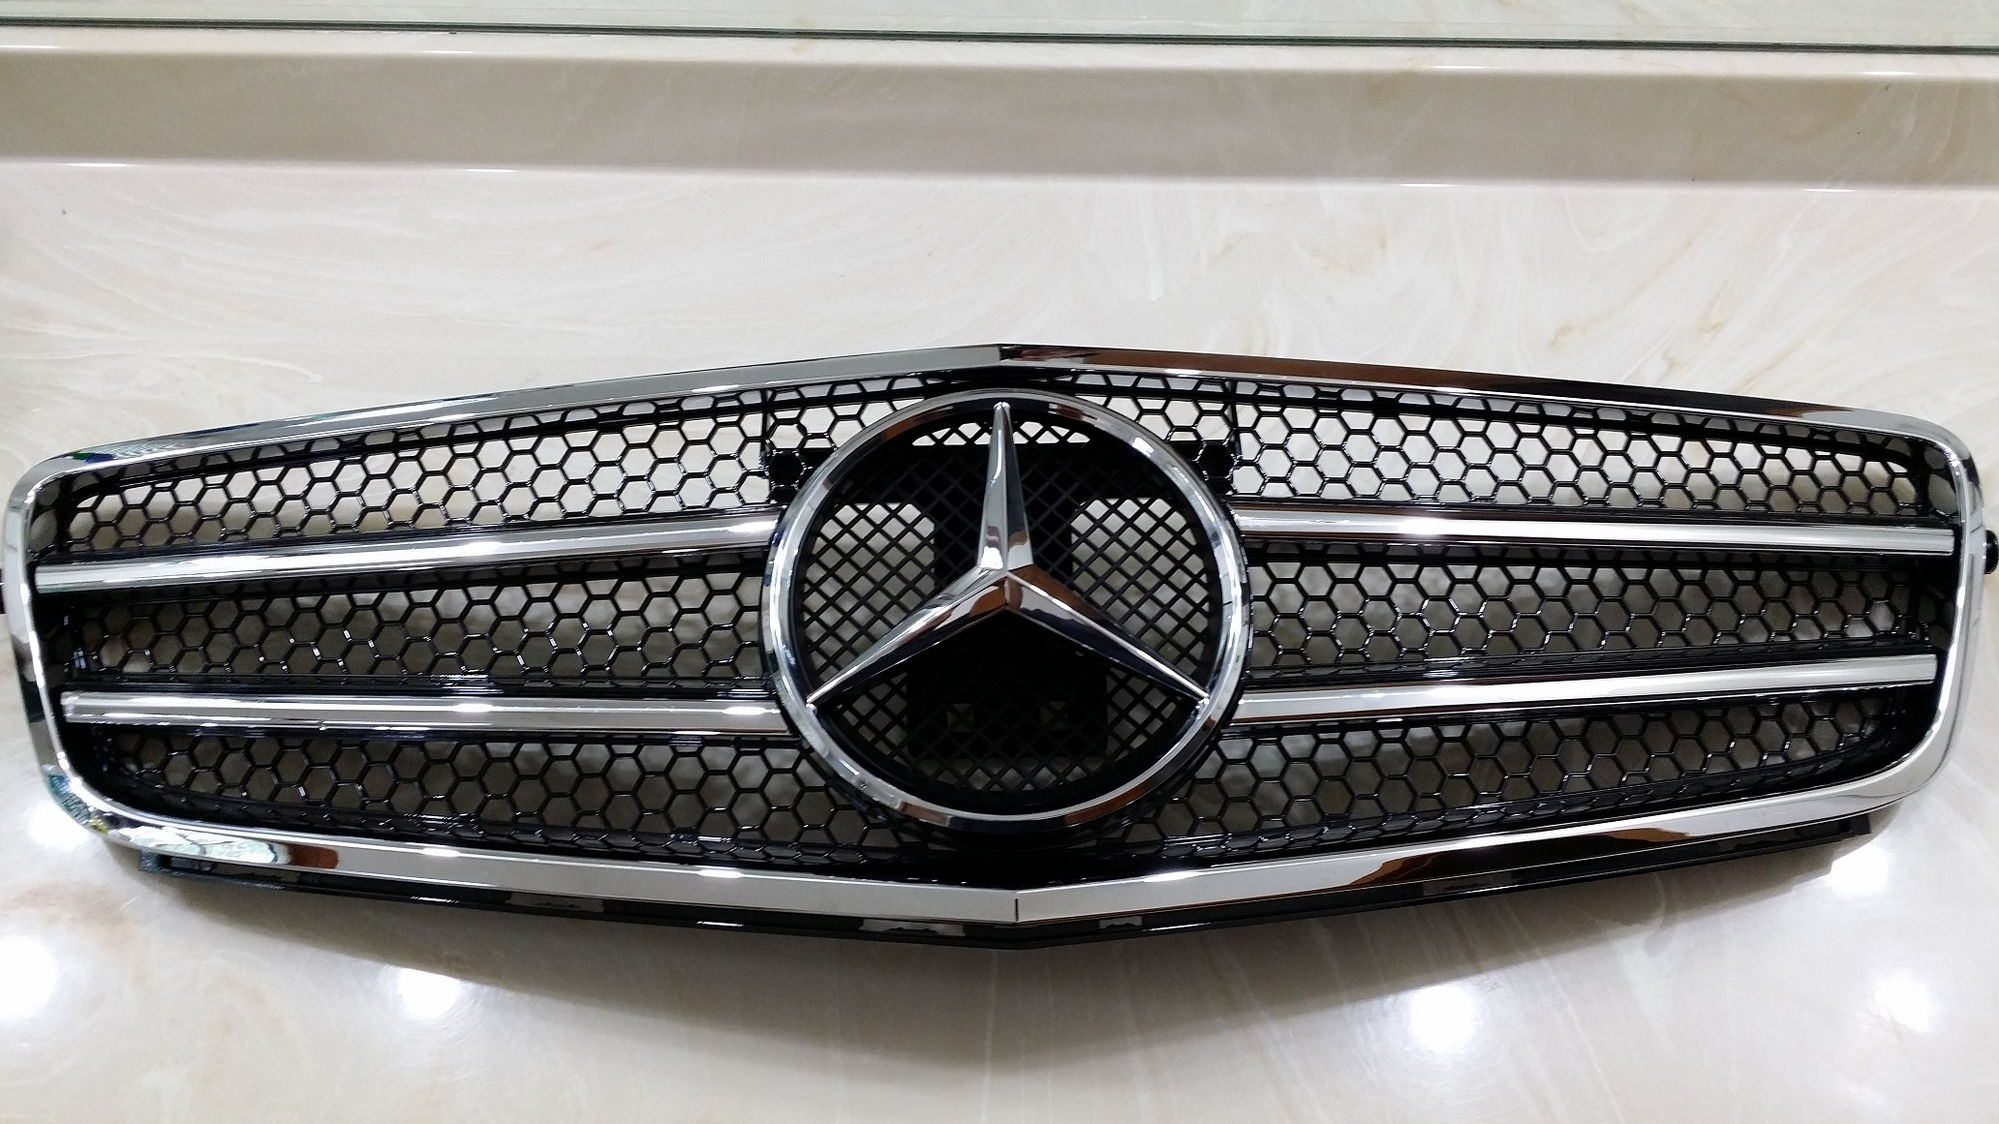 for sale mercedes benz w204 c class sport grille grill. Black Bedroom Furniture Sets. Home Design Ideas